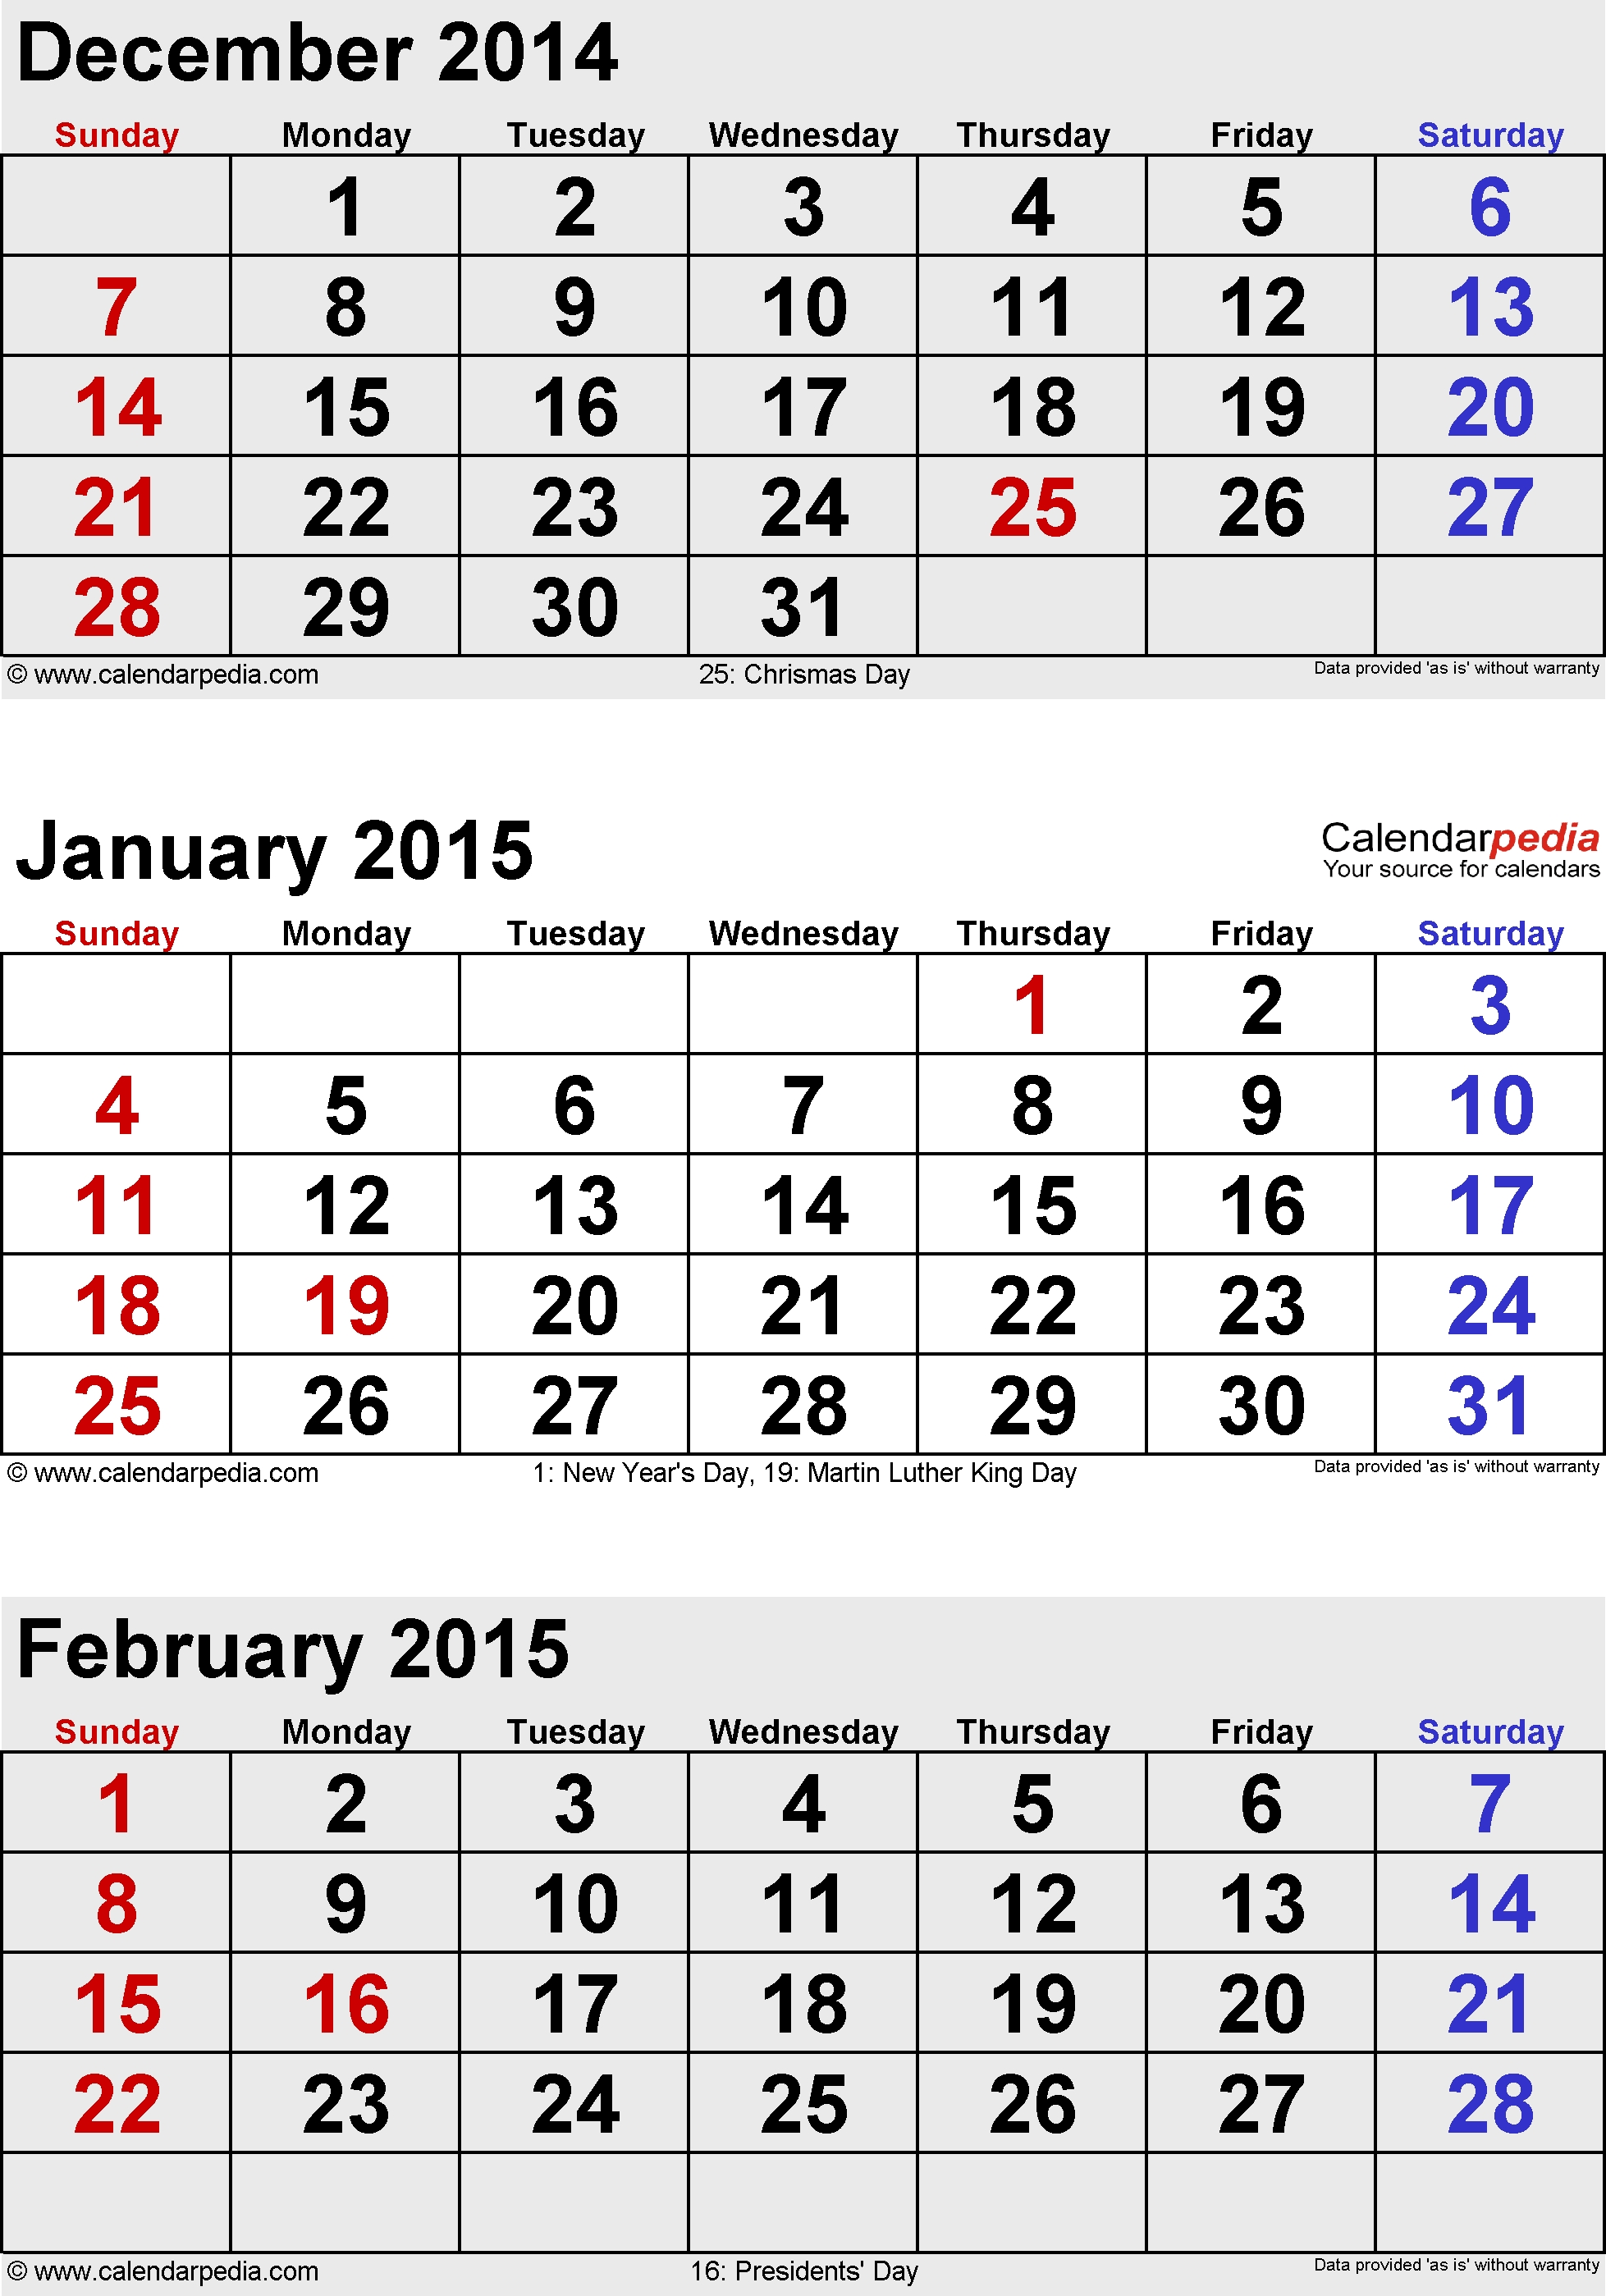 February 2015 Calendars For Word, Excel & Pdf 3 Month Calendar With Holidays